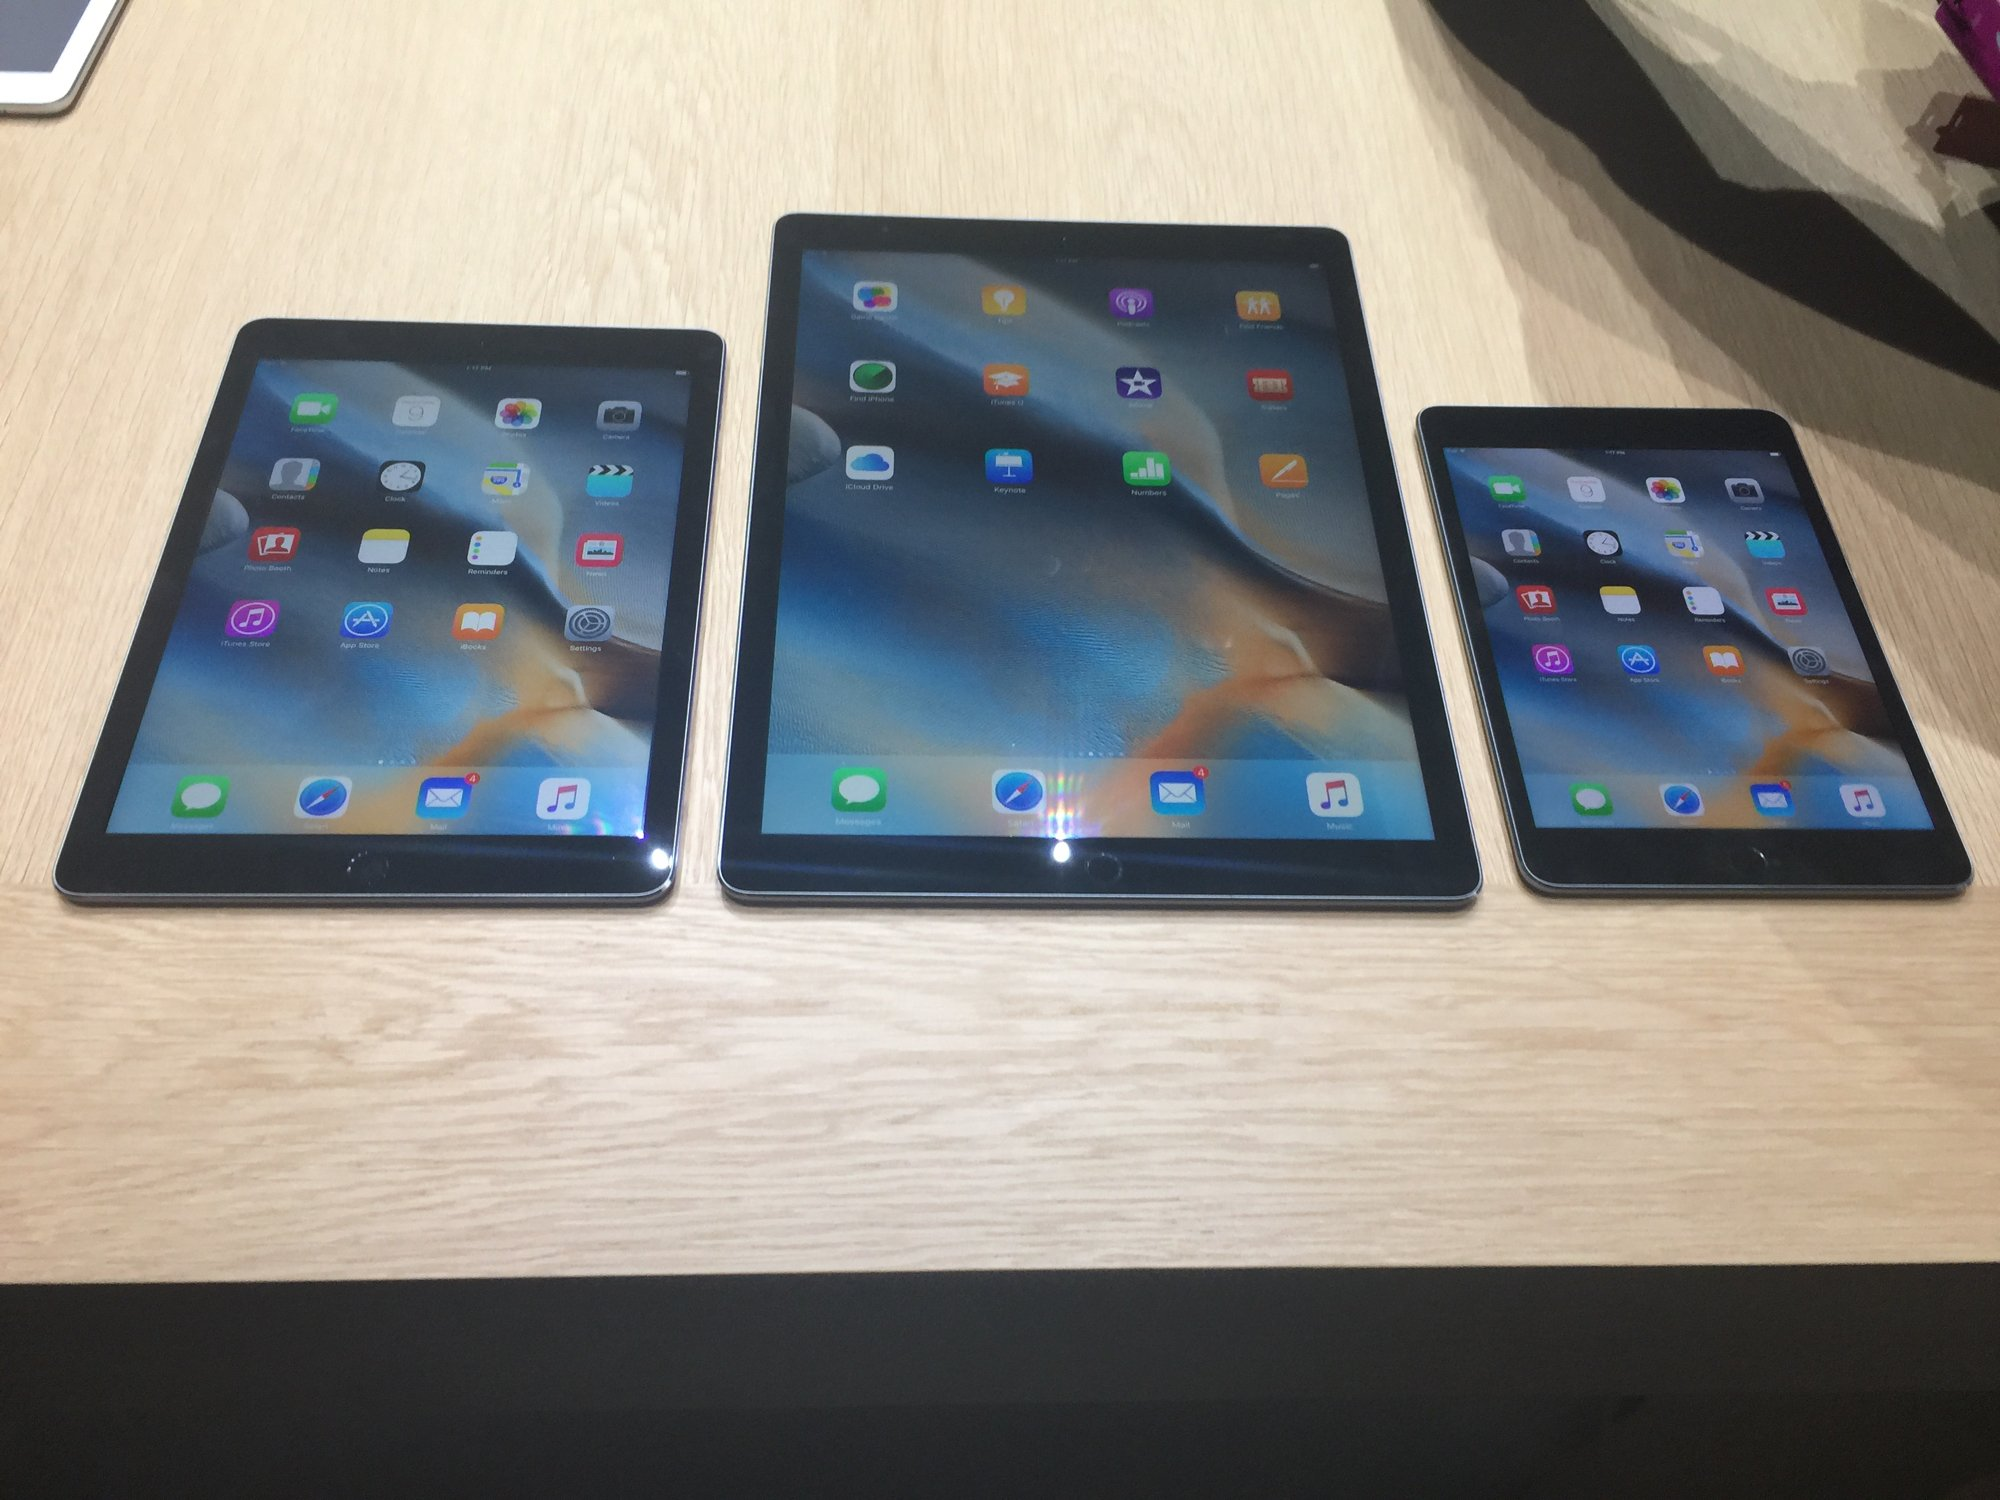 apple-ipad-pro-massive-powerful-and-the-fastest-ipad-apple-ever-produced